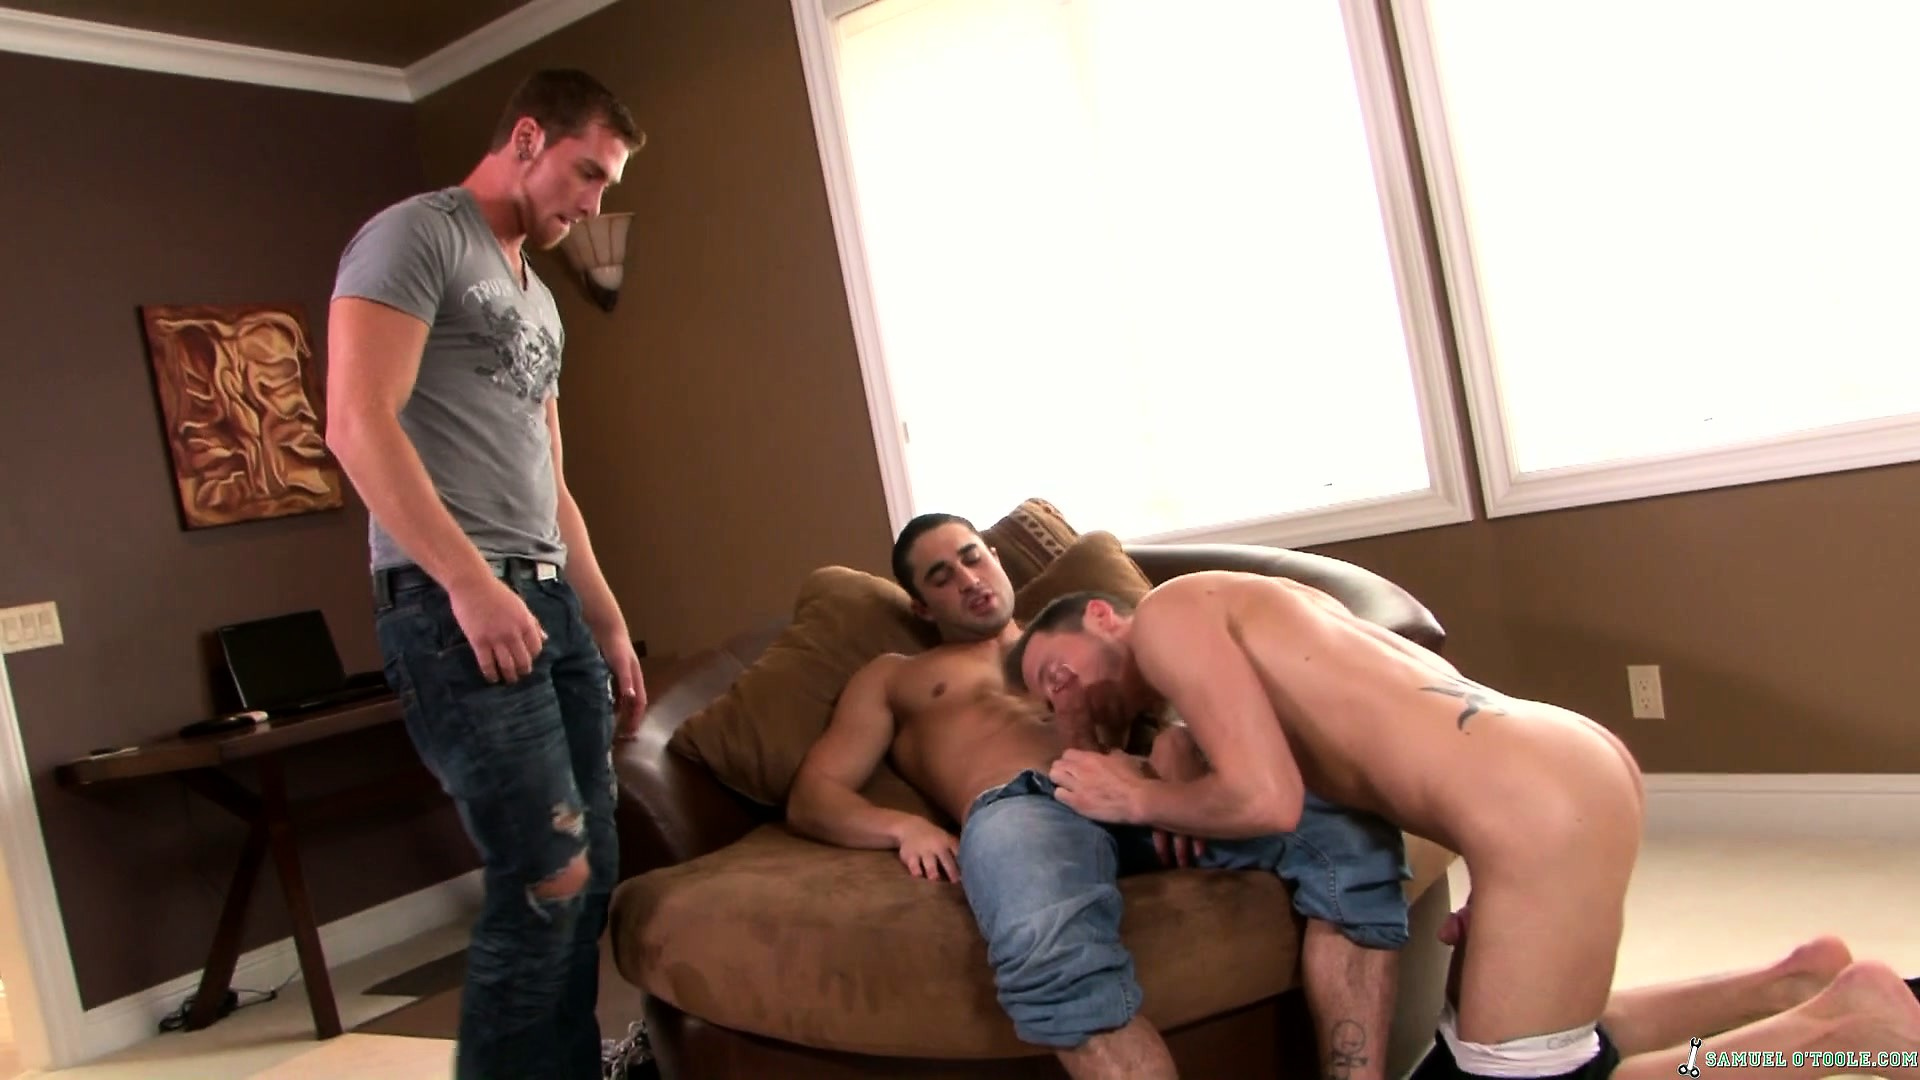 Porno Video of Three Horny Boys Get Together To Satisfy Common Desires And Needs